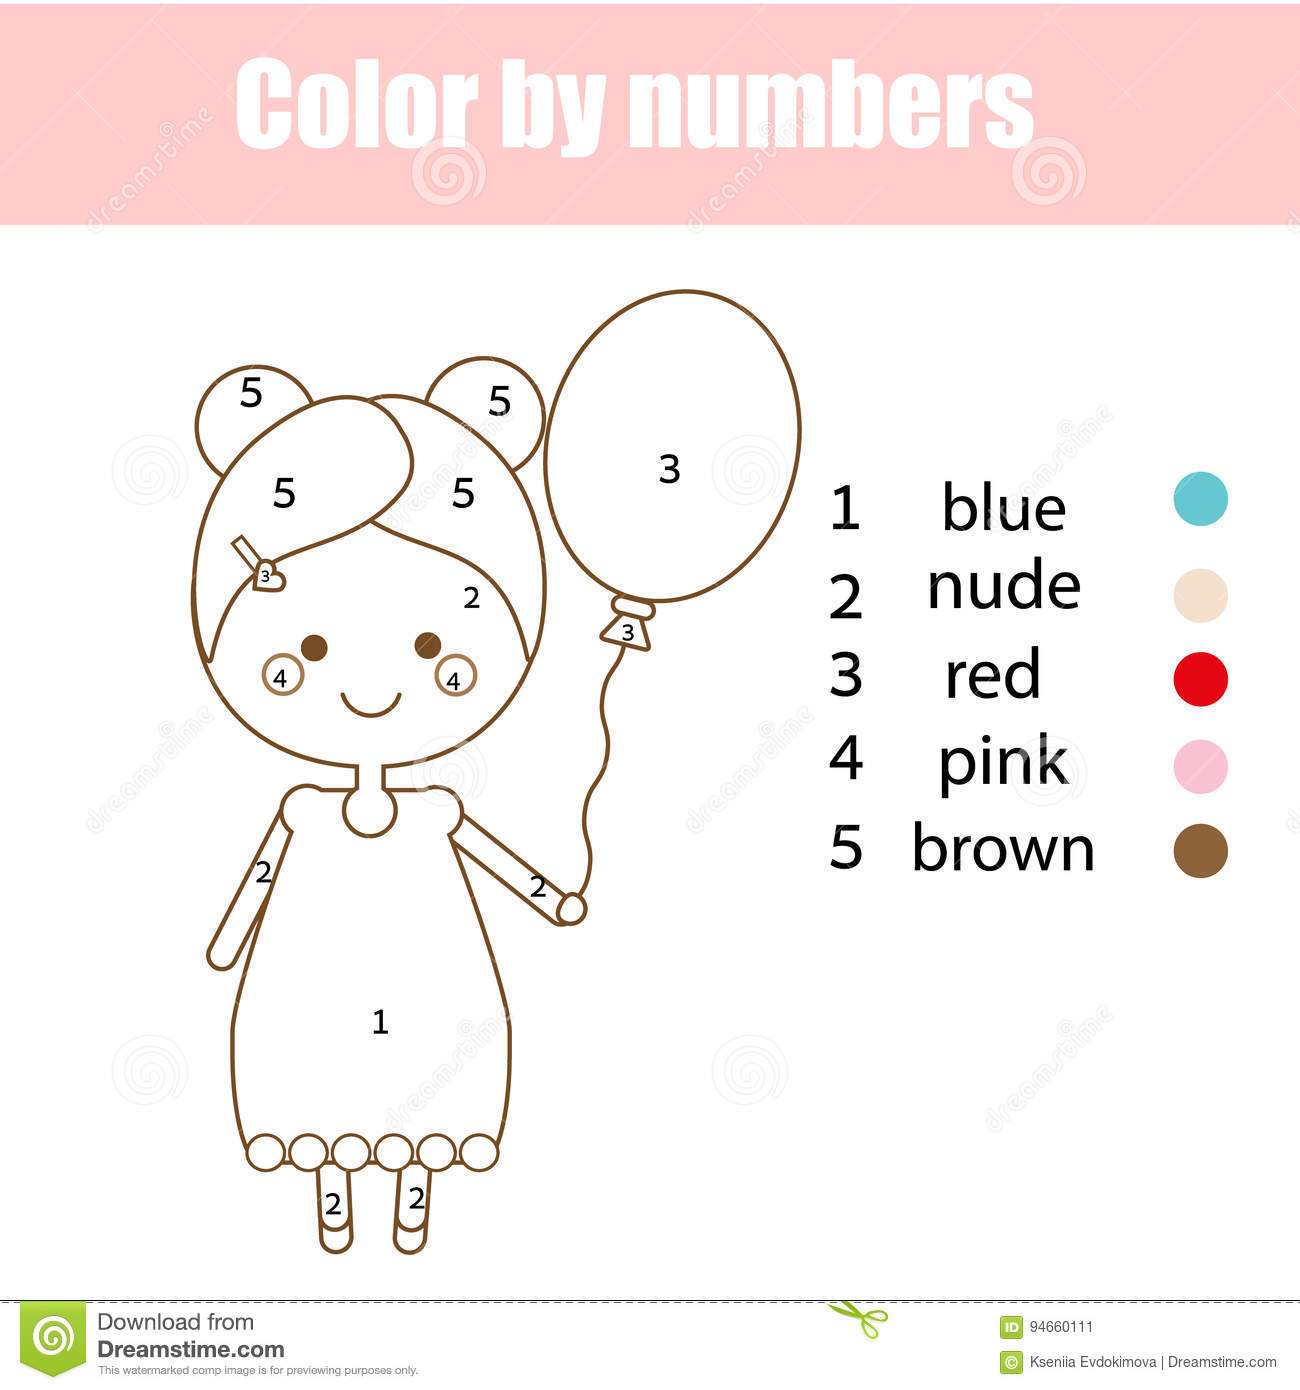 Coloring Page With Cute Girl Character Color By Numbers Educational Children Game Drawing Kids Activity Illustration 94660111 Megapixl